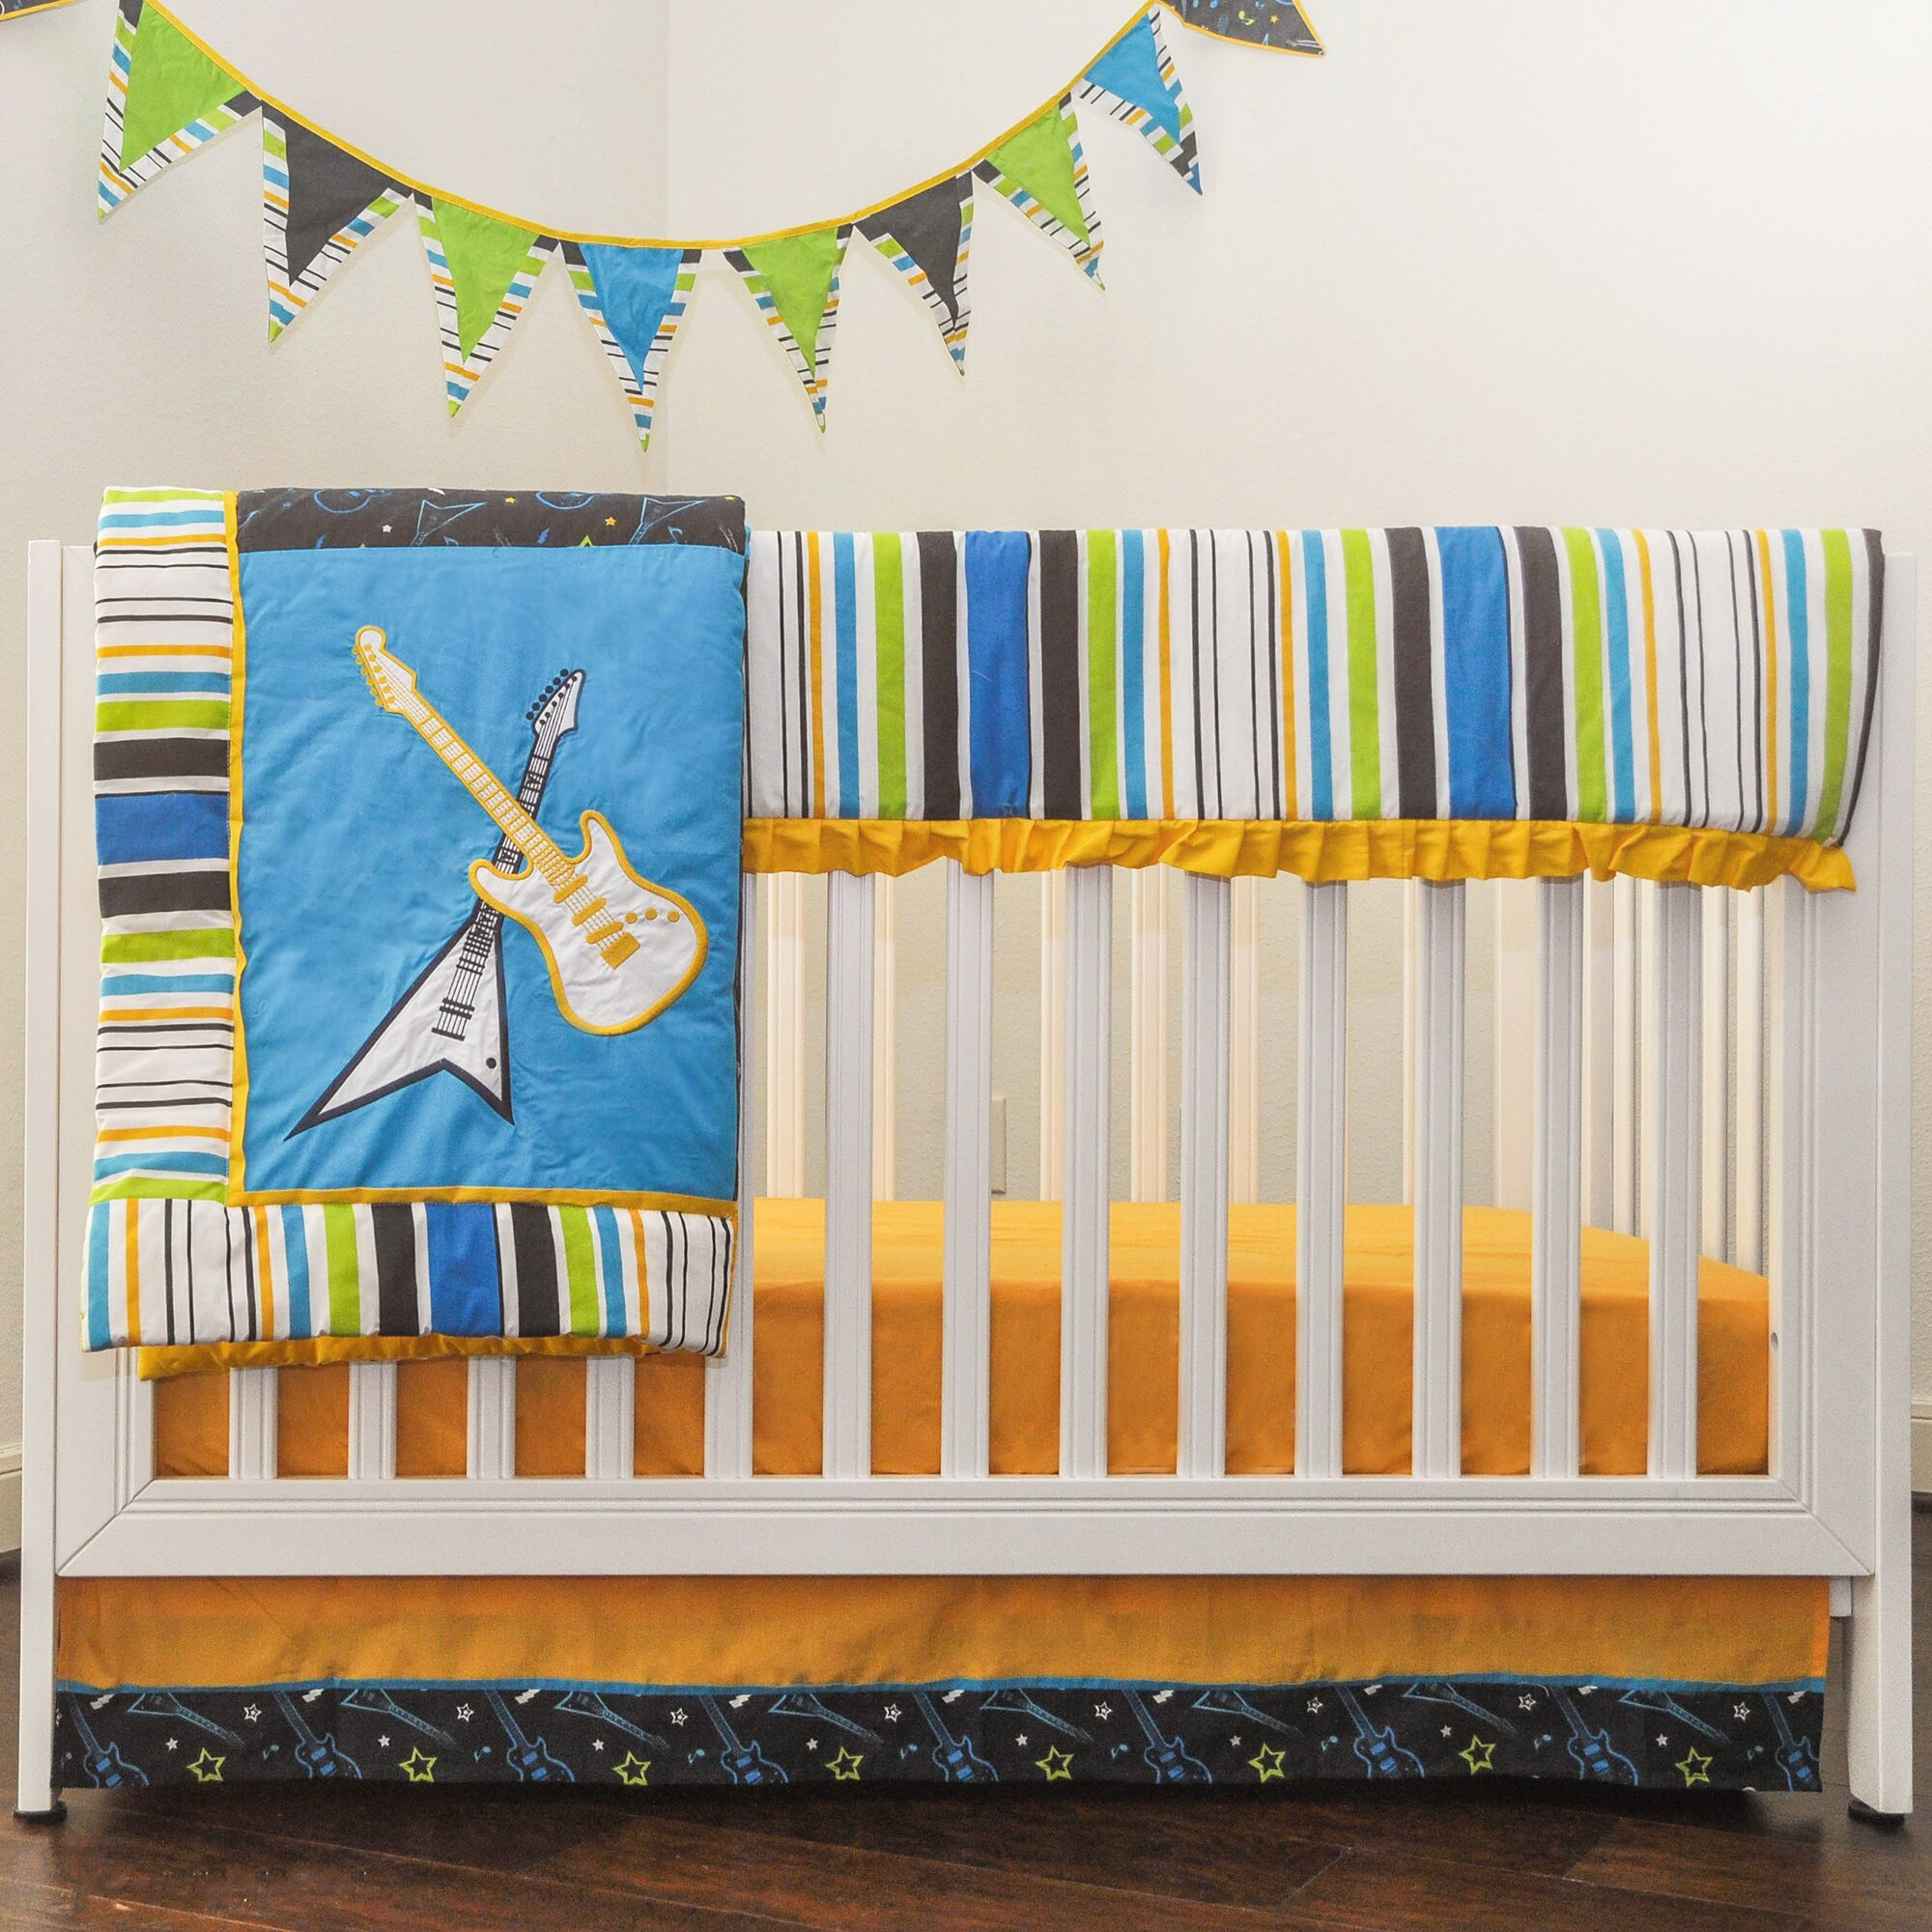 Crib for sale in palm bay - Pam Grace Creations Rockstar 10 Piece Crib Bedding Set